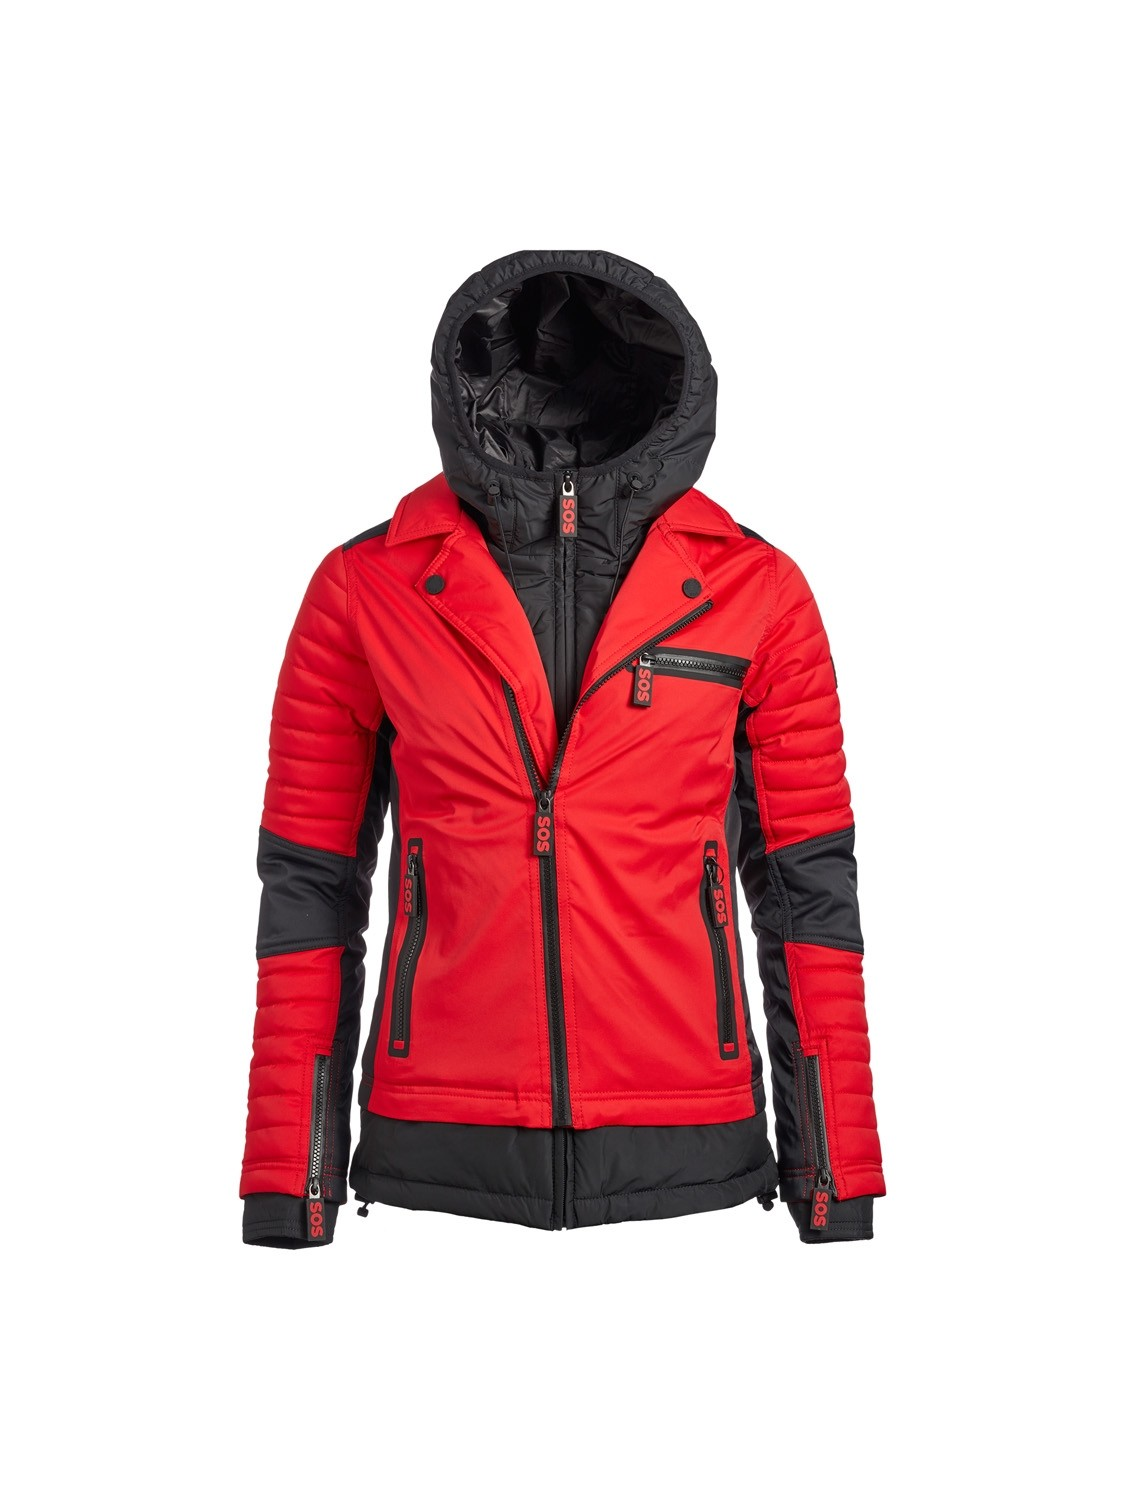 SOS Sportswear of Sweden Driss Jacket Racing Red